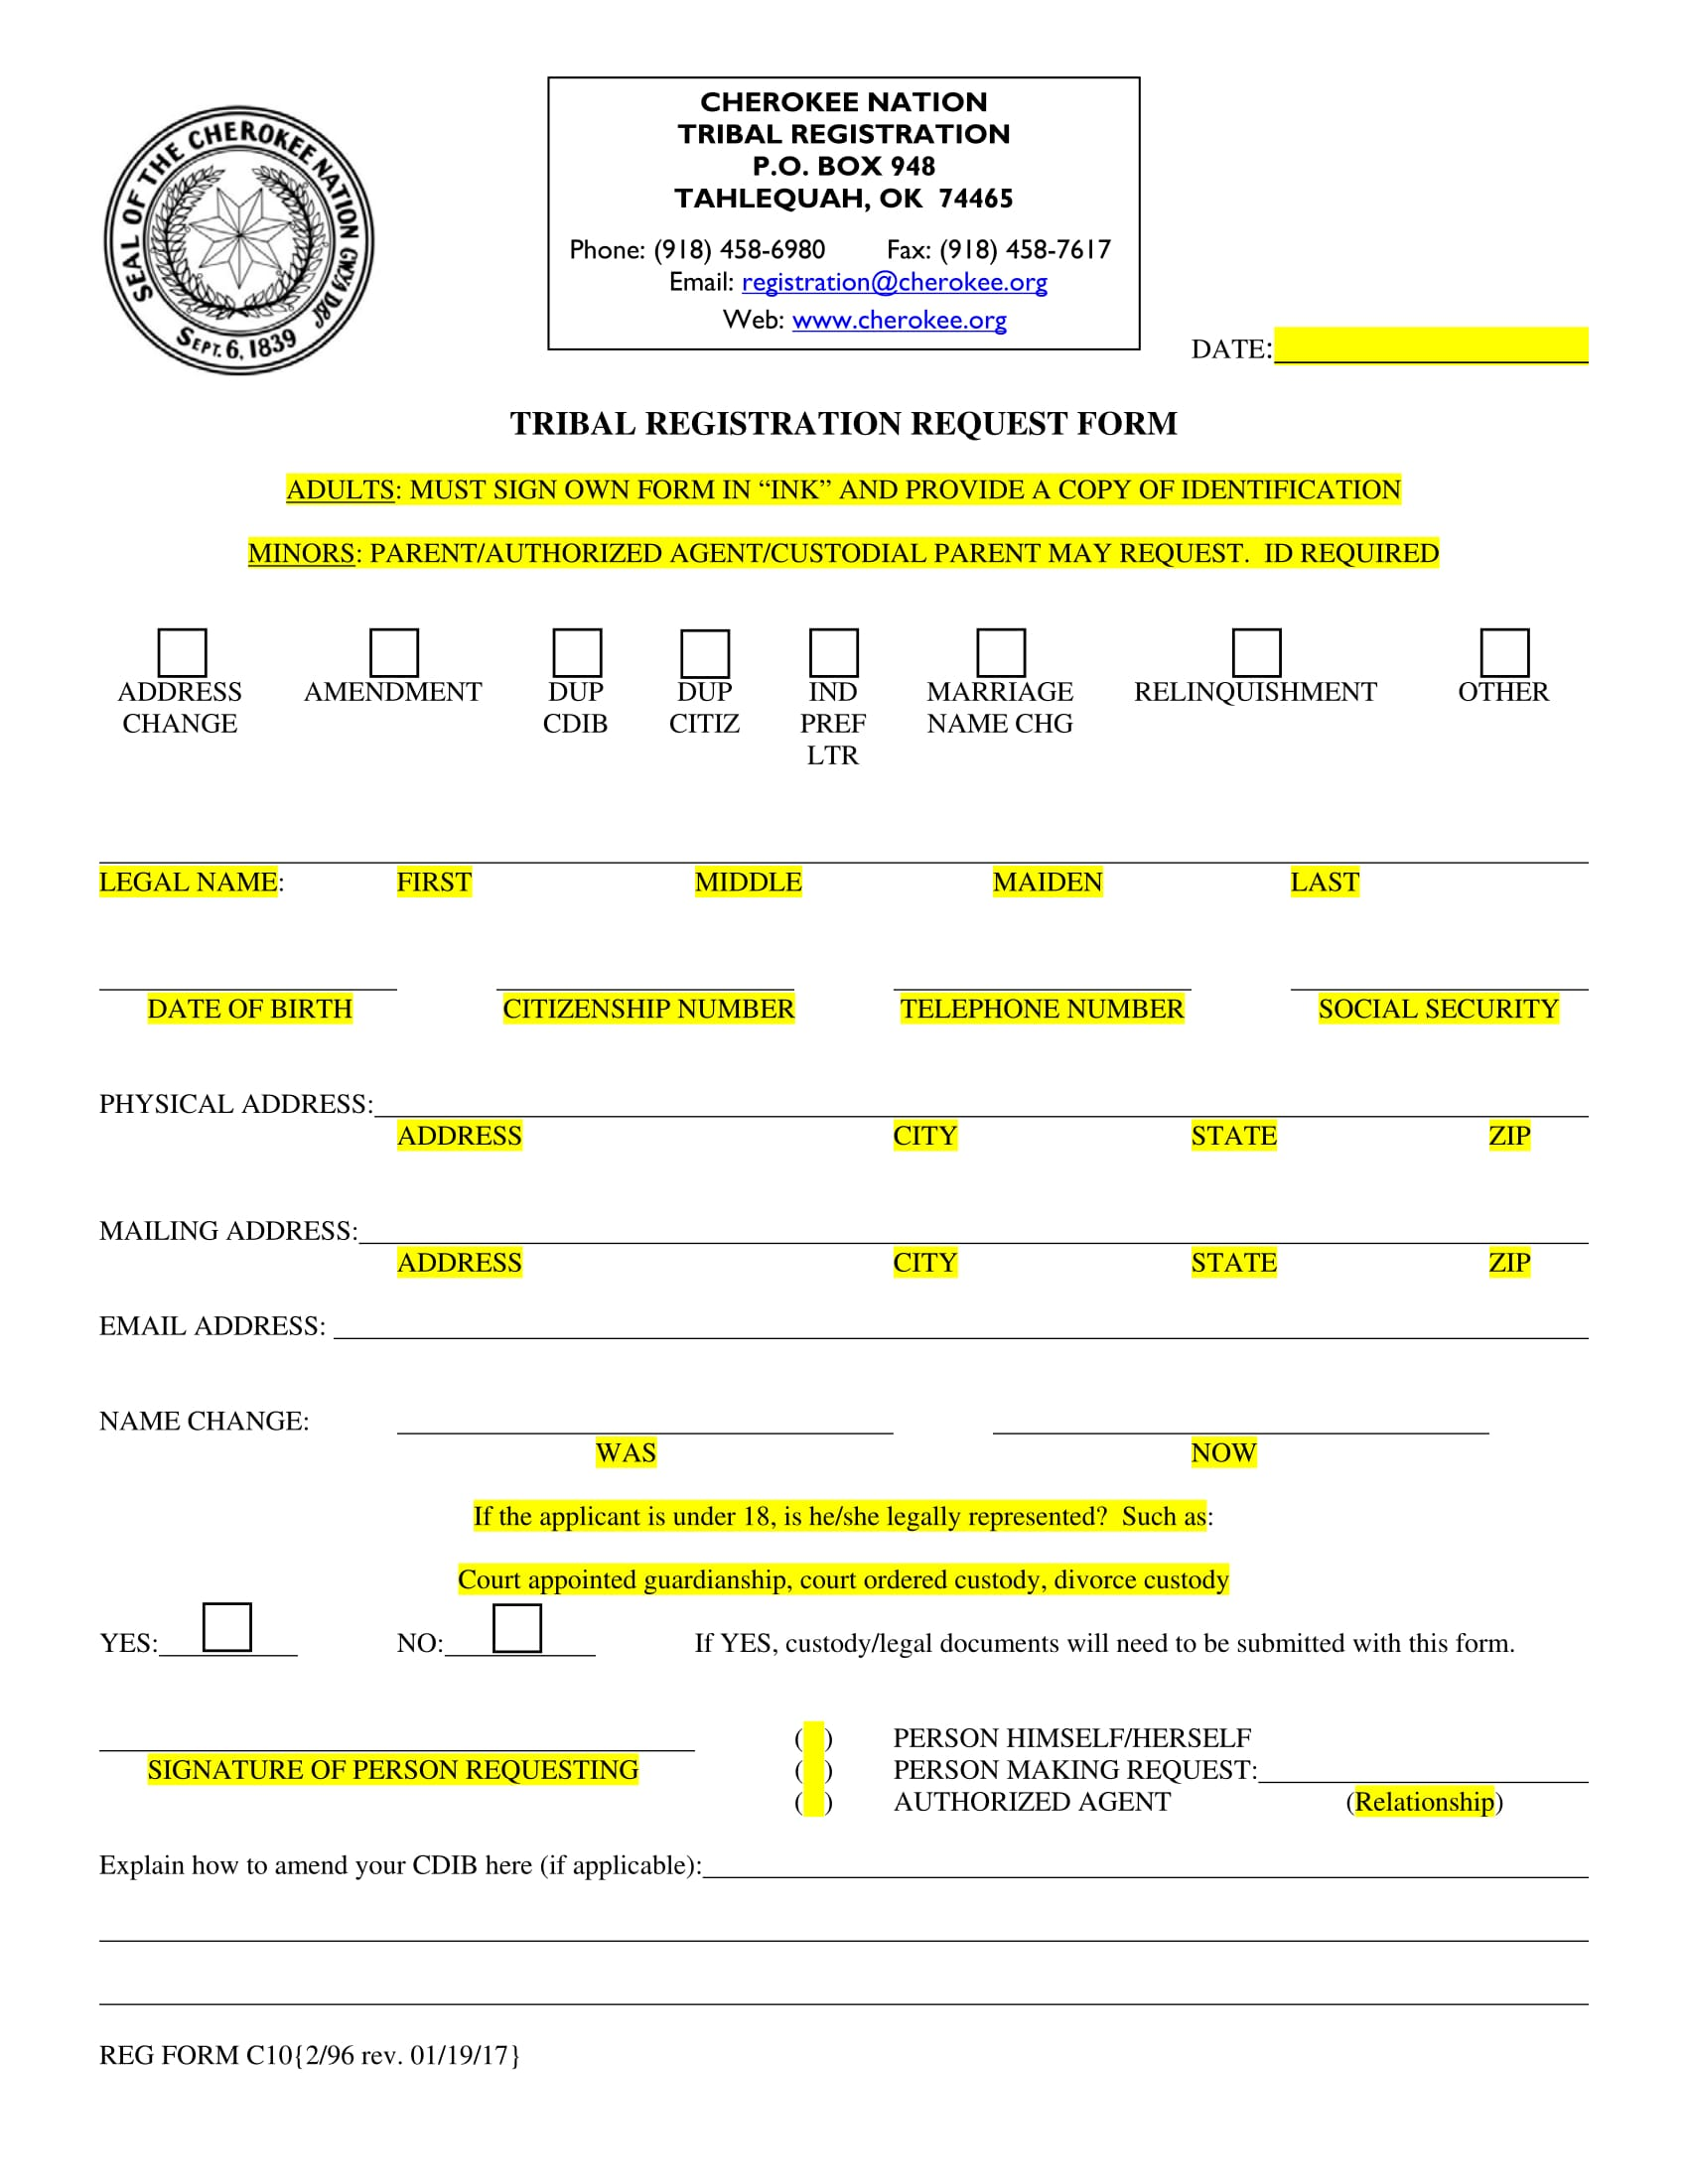 tribal registration request form 1